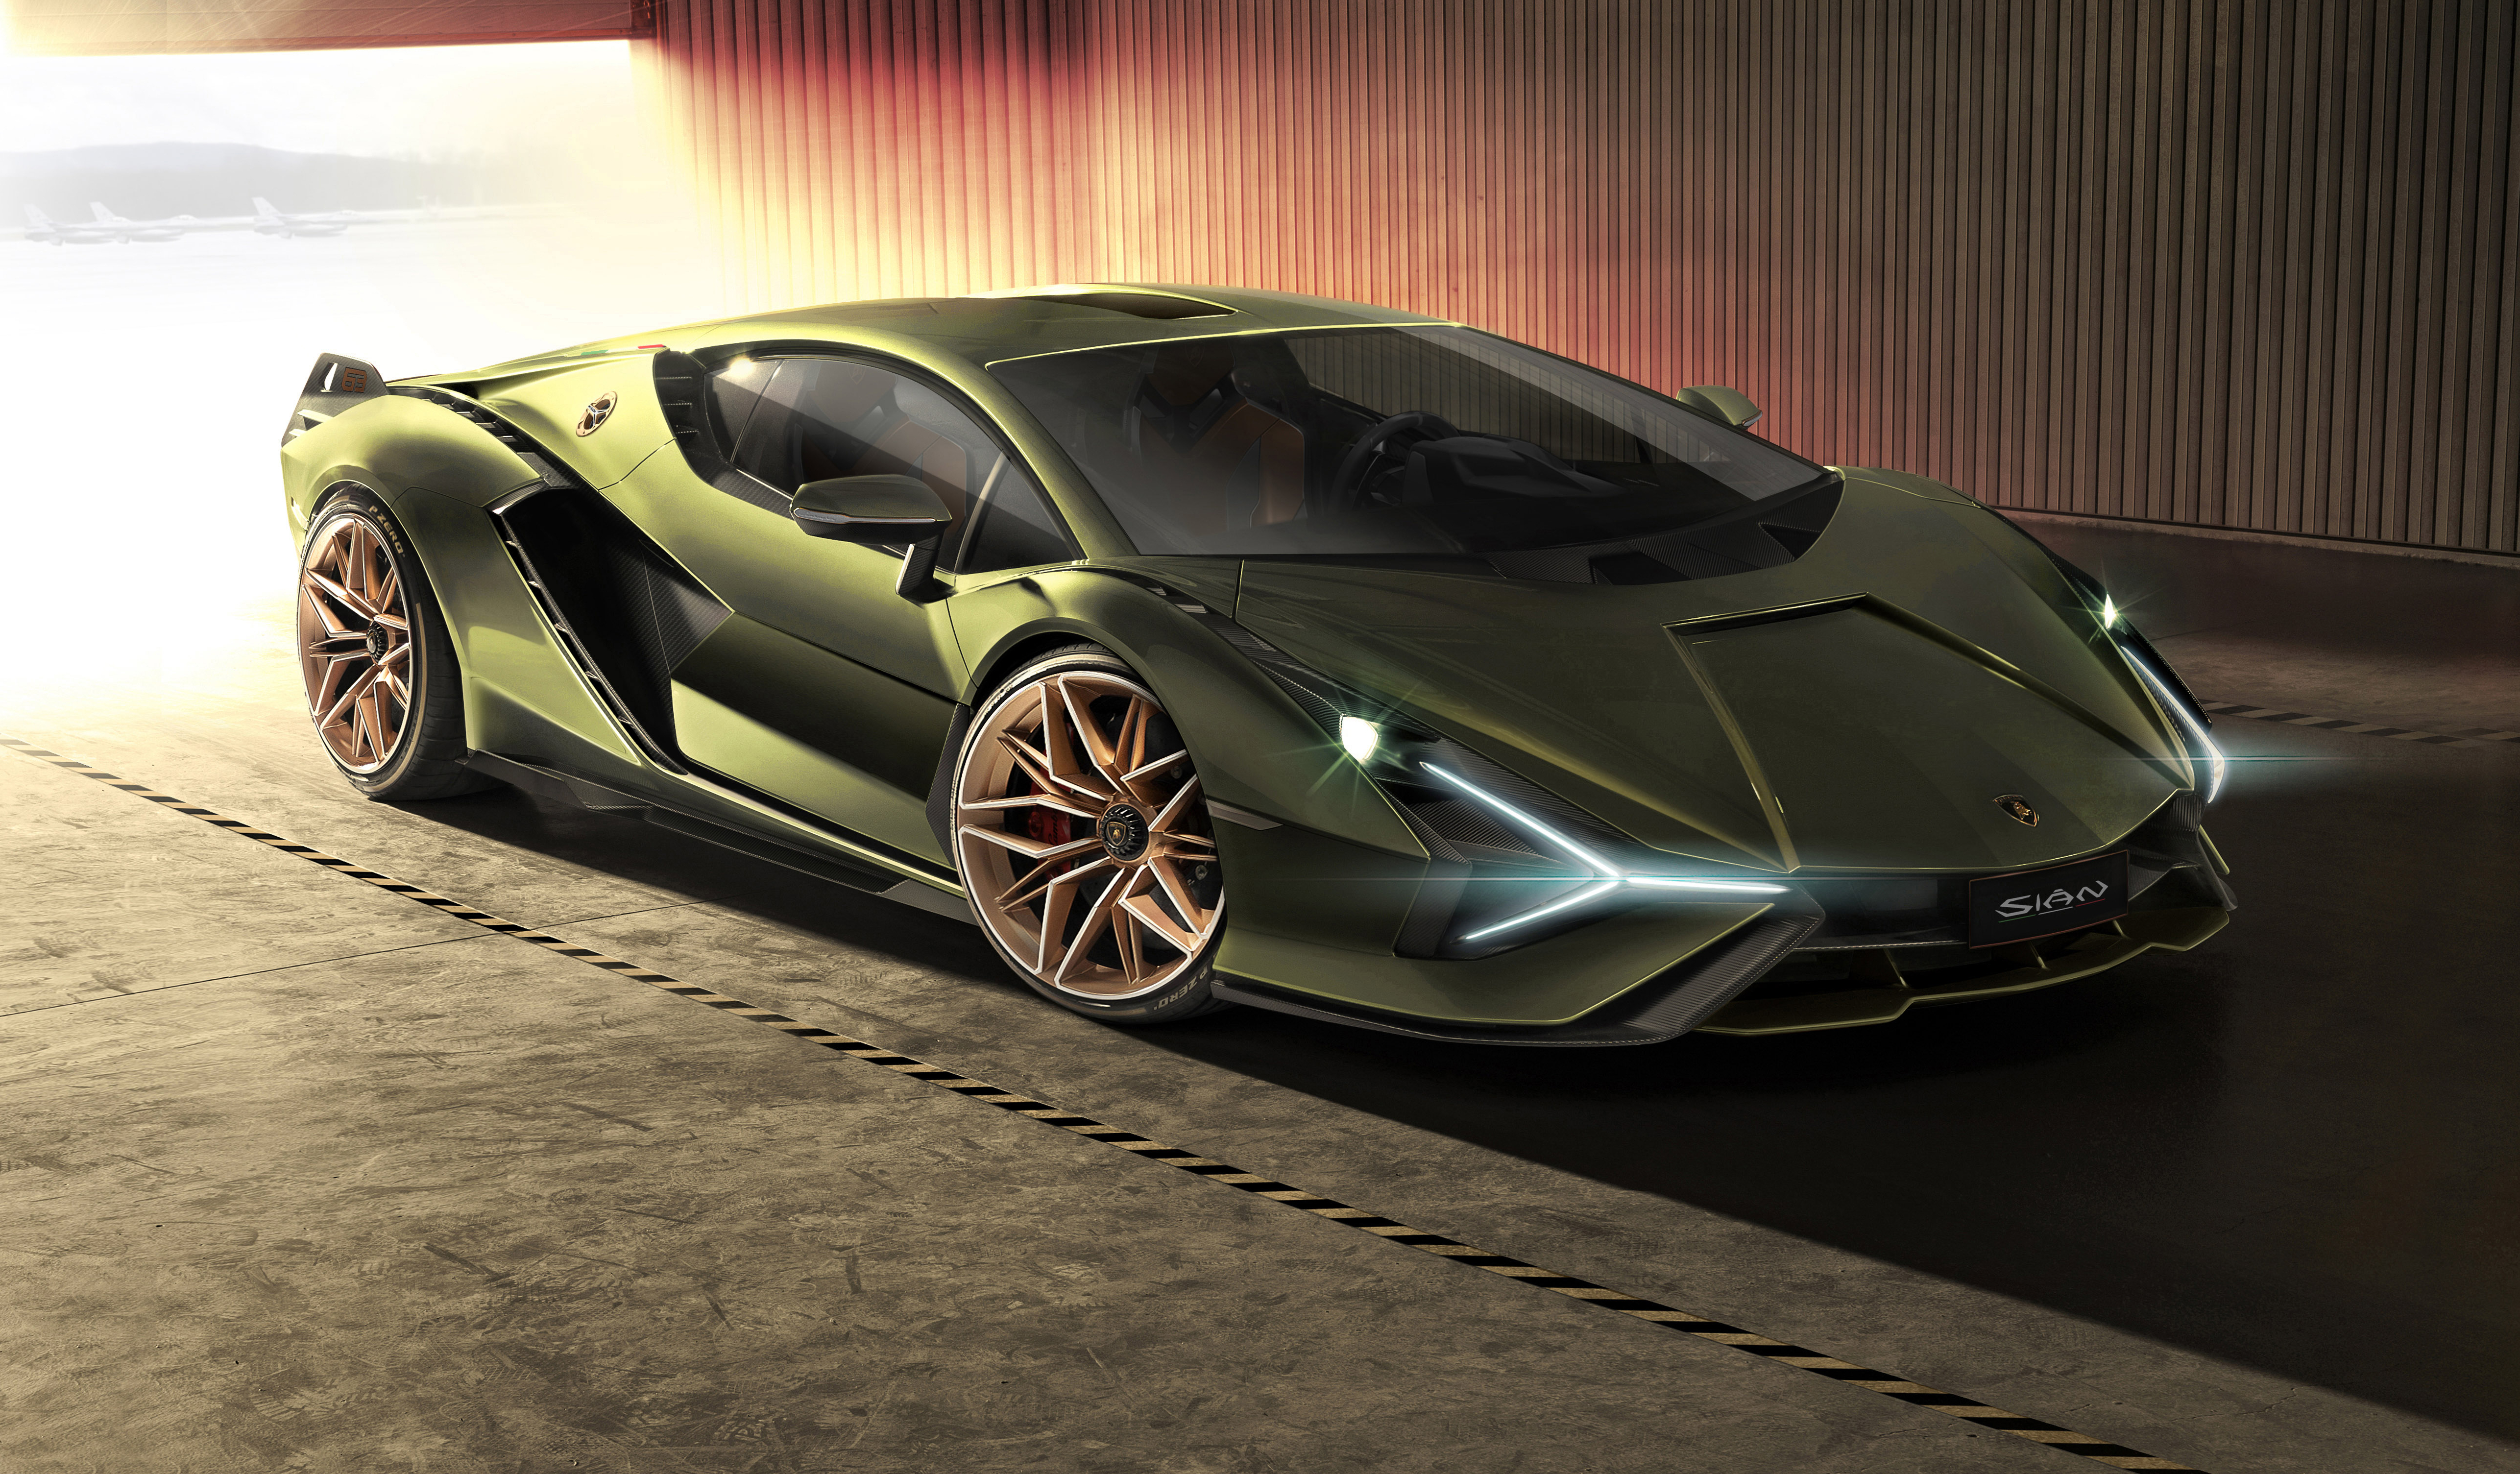 Lamborghini Sian Latest News, Reviews, Specifications